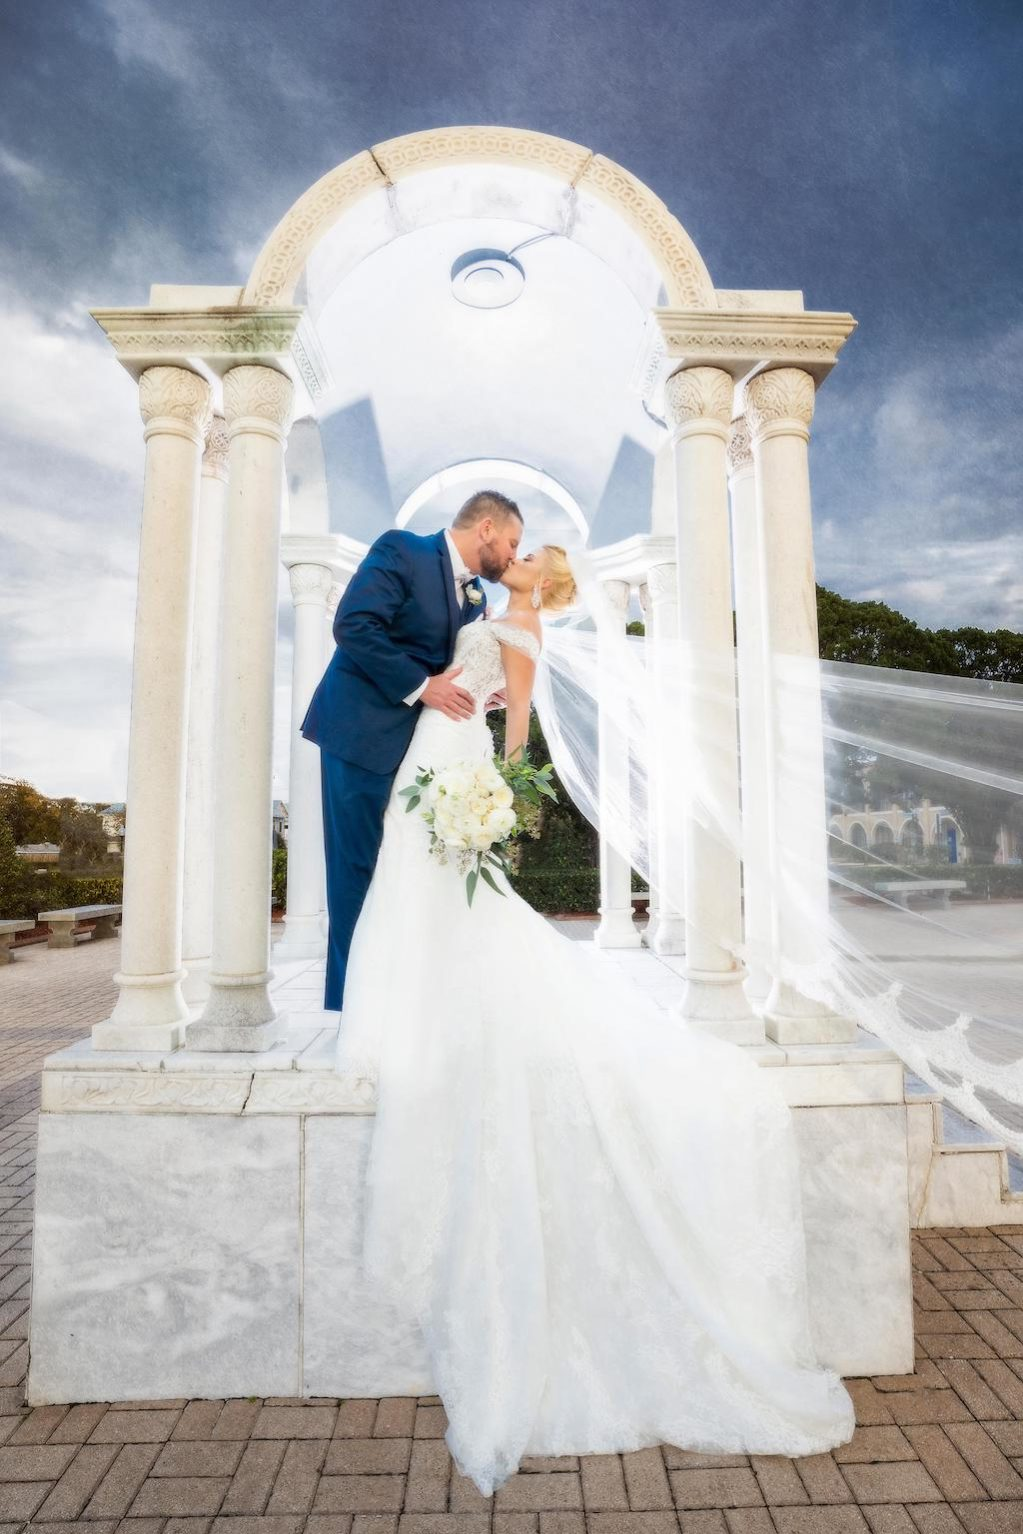 Tampa Bride and Groom Intimate Wedding Portrait, Bride Wearing Pronovias White Lace Wedding Dress With Cathedral Length Train and Veil | Tampa Bay Bridal Dress Shop Nikki and Glitz Glam Boutique